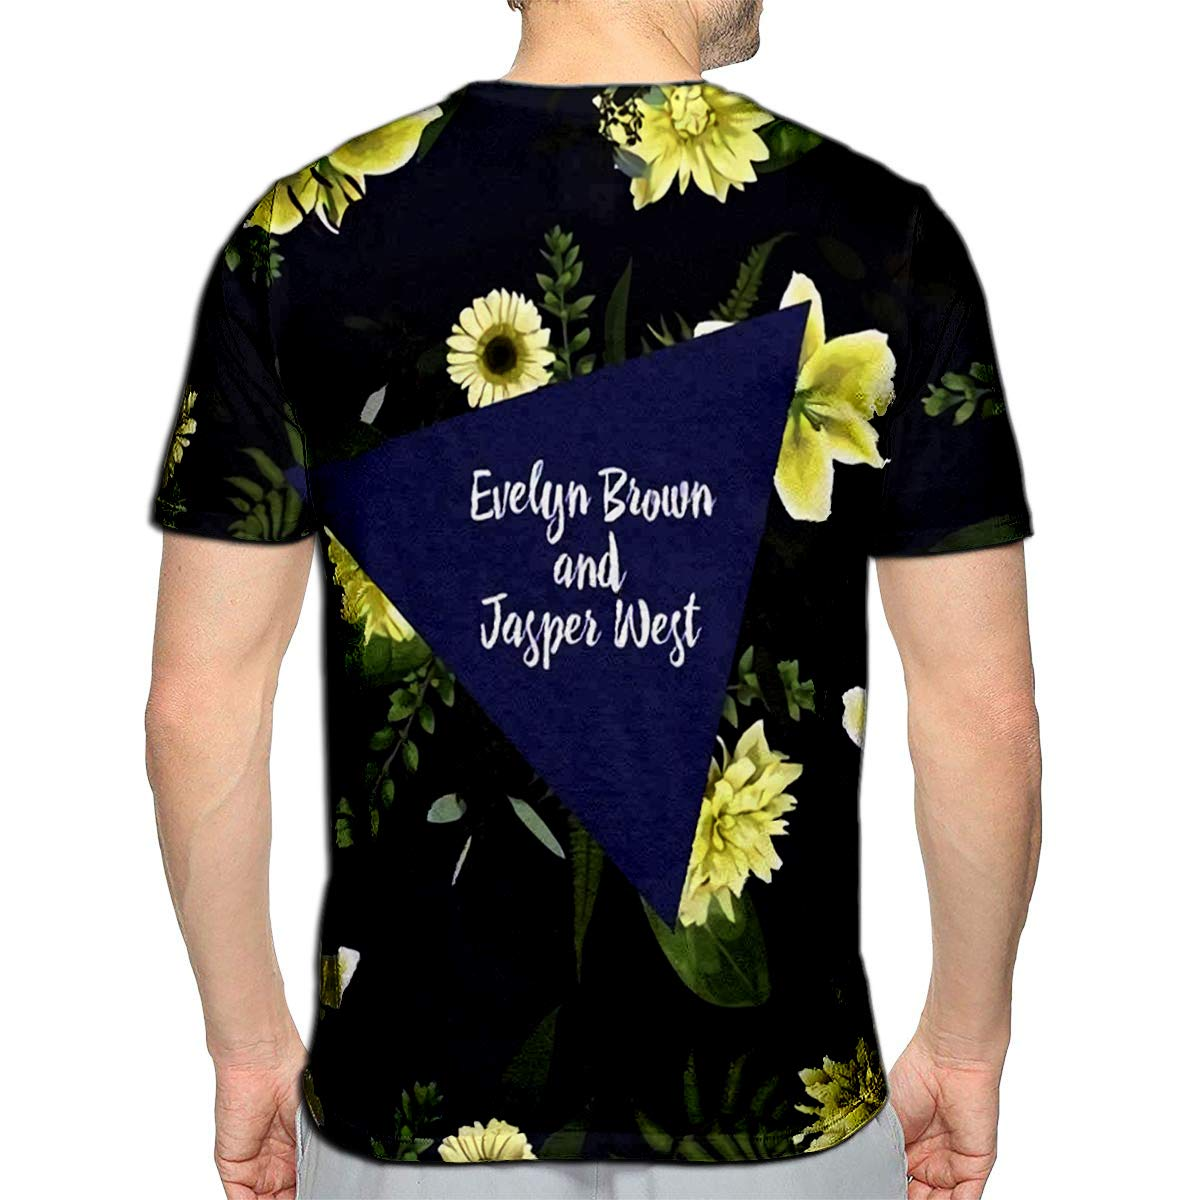 3D Printed T-Shirts Watercolor Magic with Artistic Elements Short Sleeve Tops Te